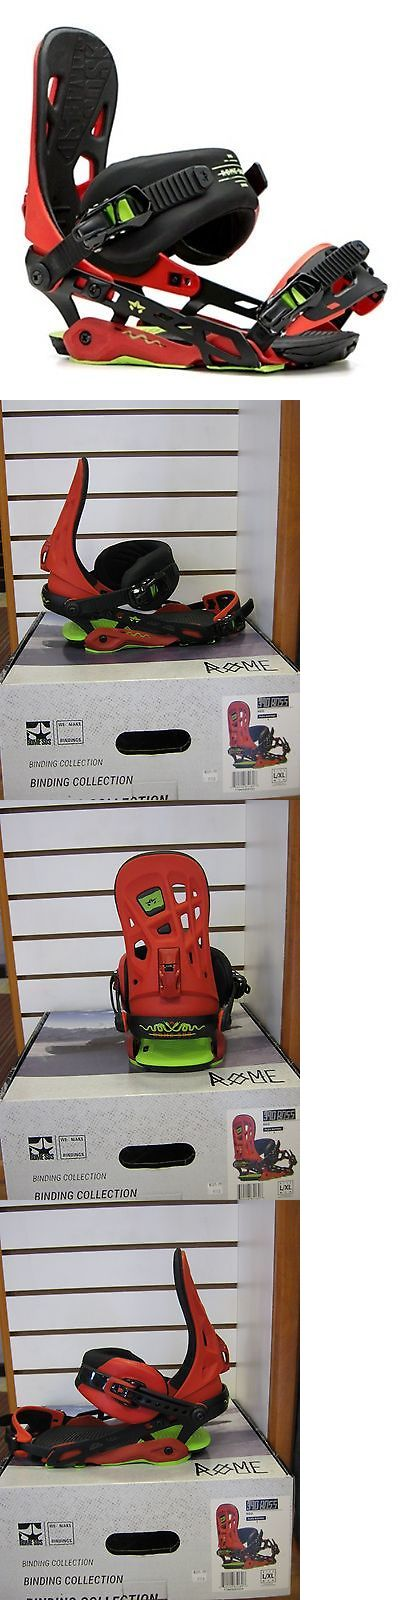 Bindings 21248: 2017 Rome Sds 390 Boss Snowboard Bindings L/Xl Red BUY IT NOW ONLY: $169.0